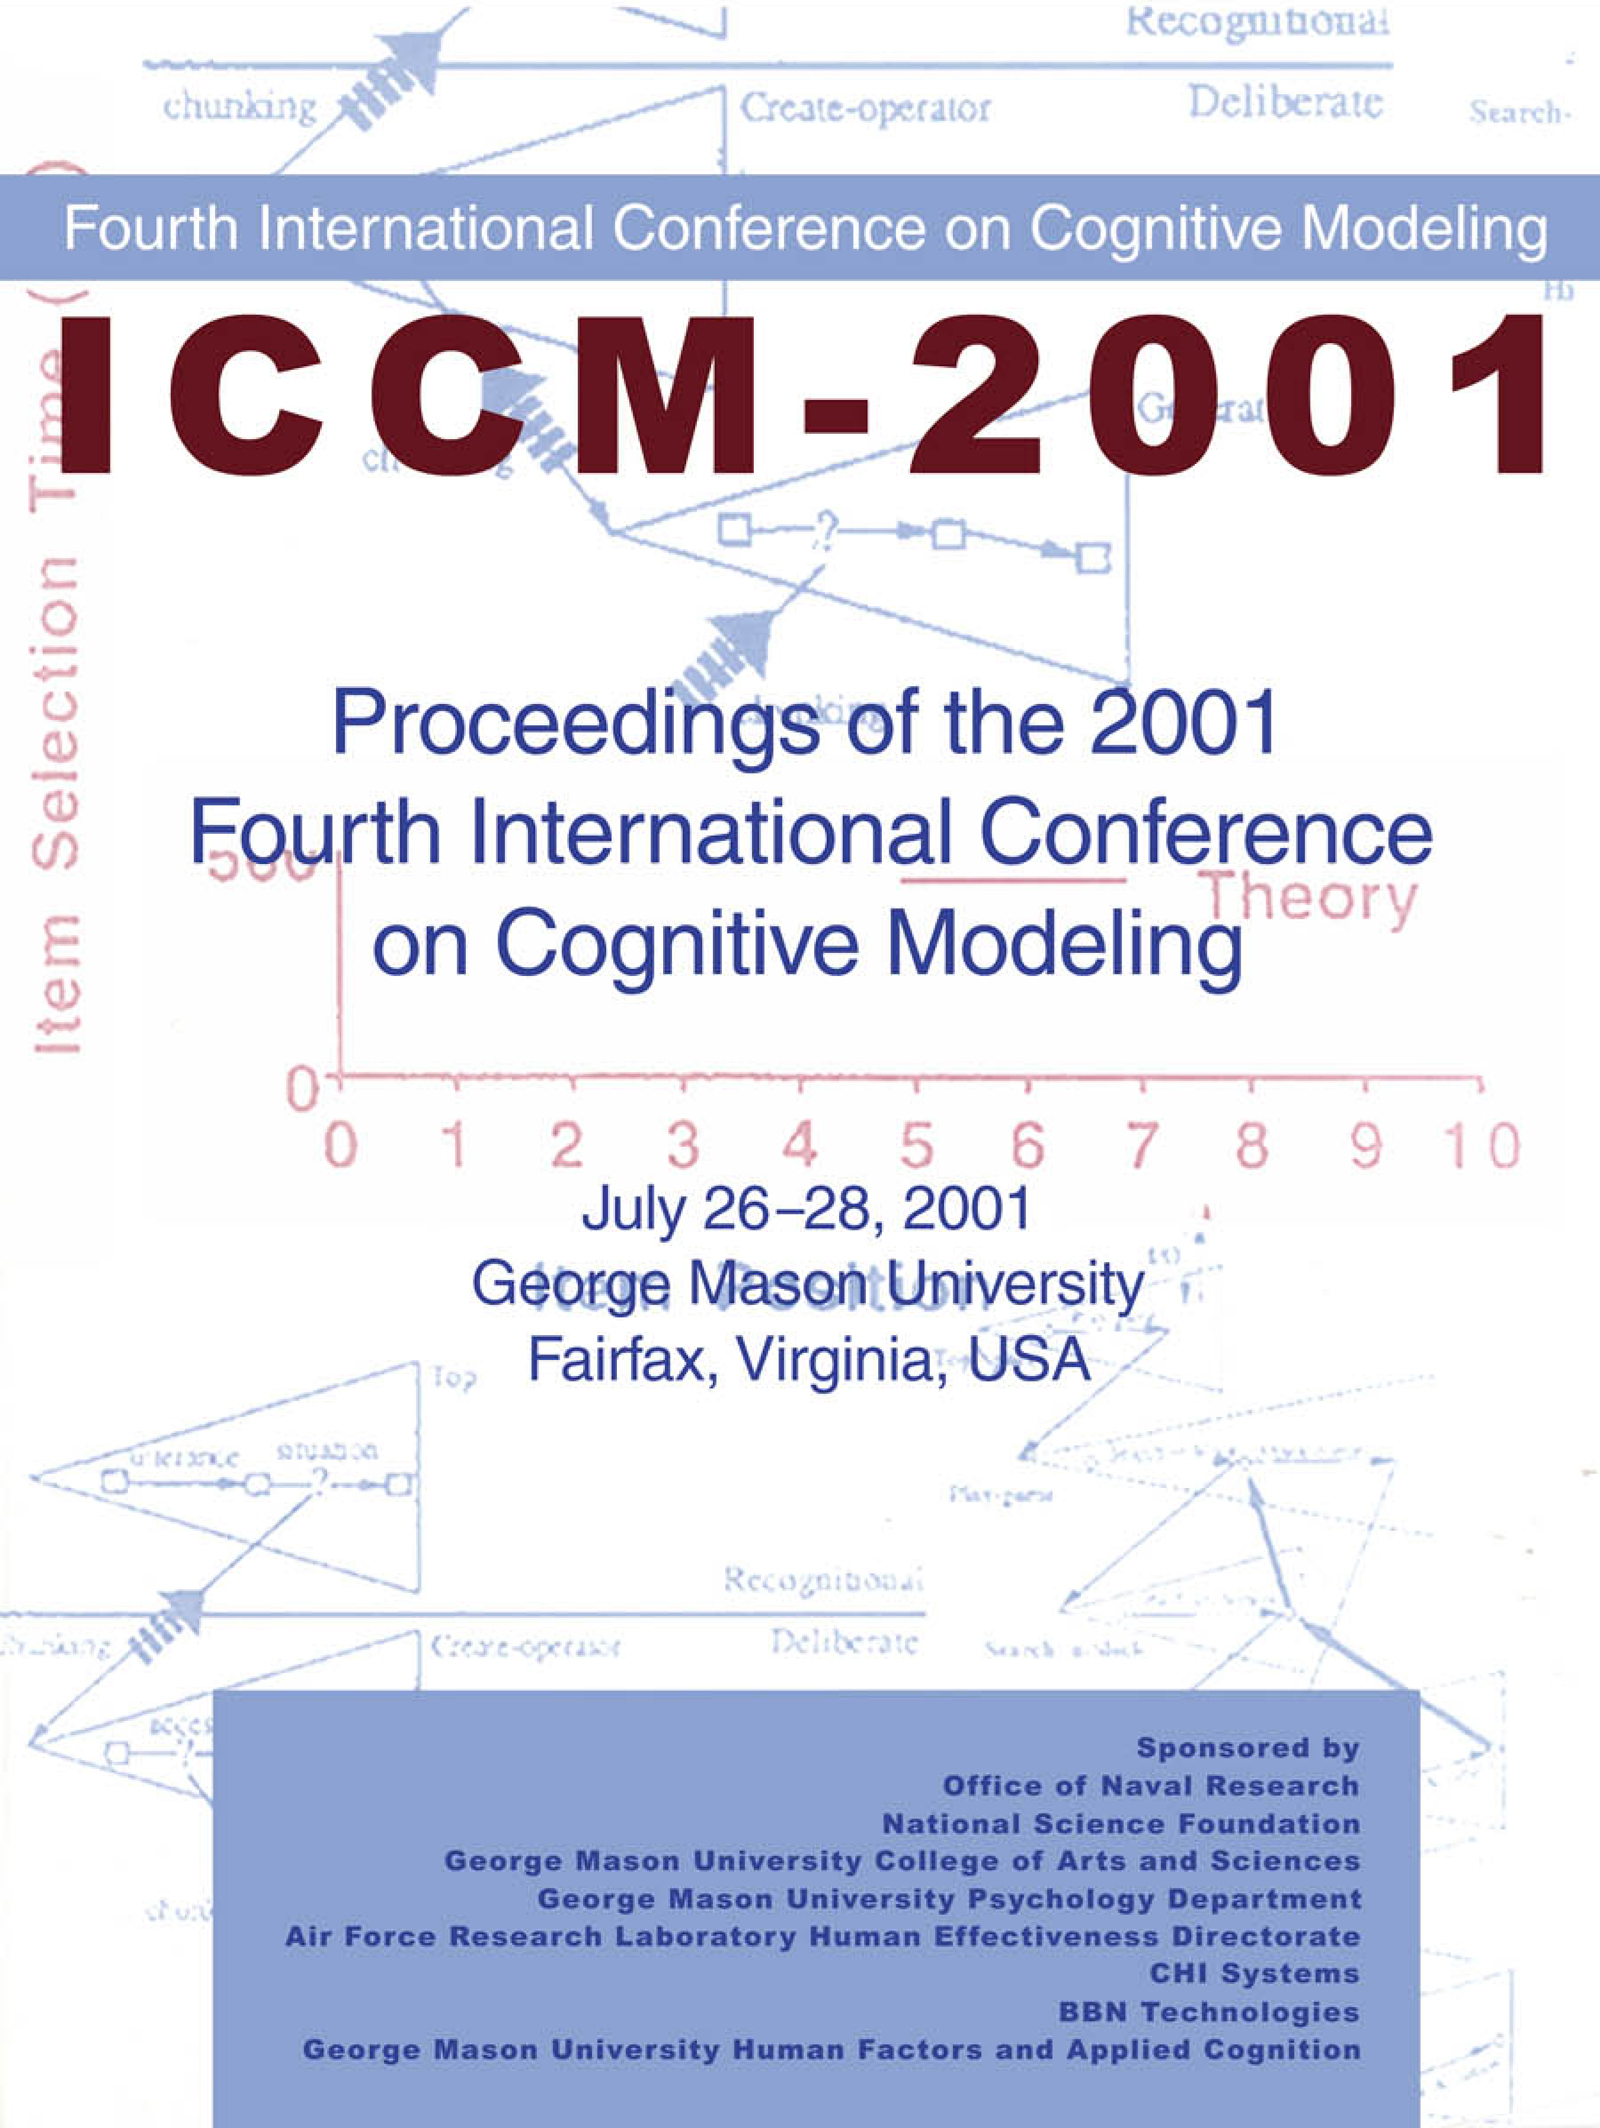 Socionics: A New Challenge for Cognitive Modeling